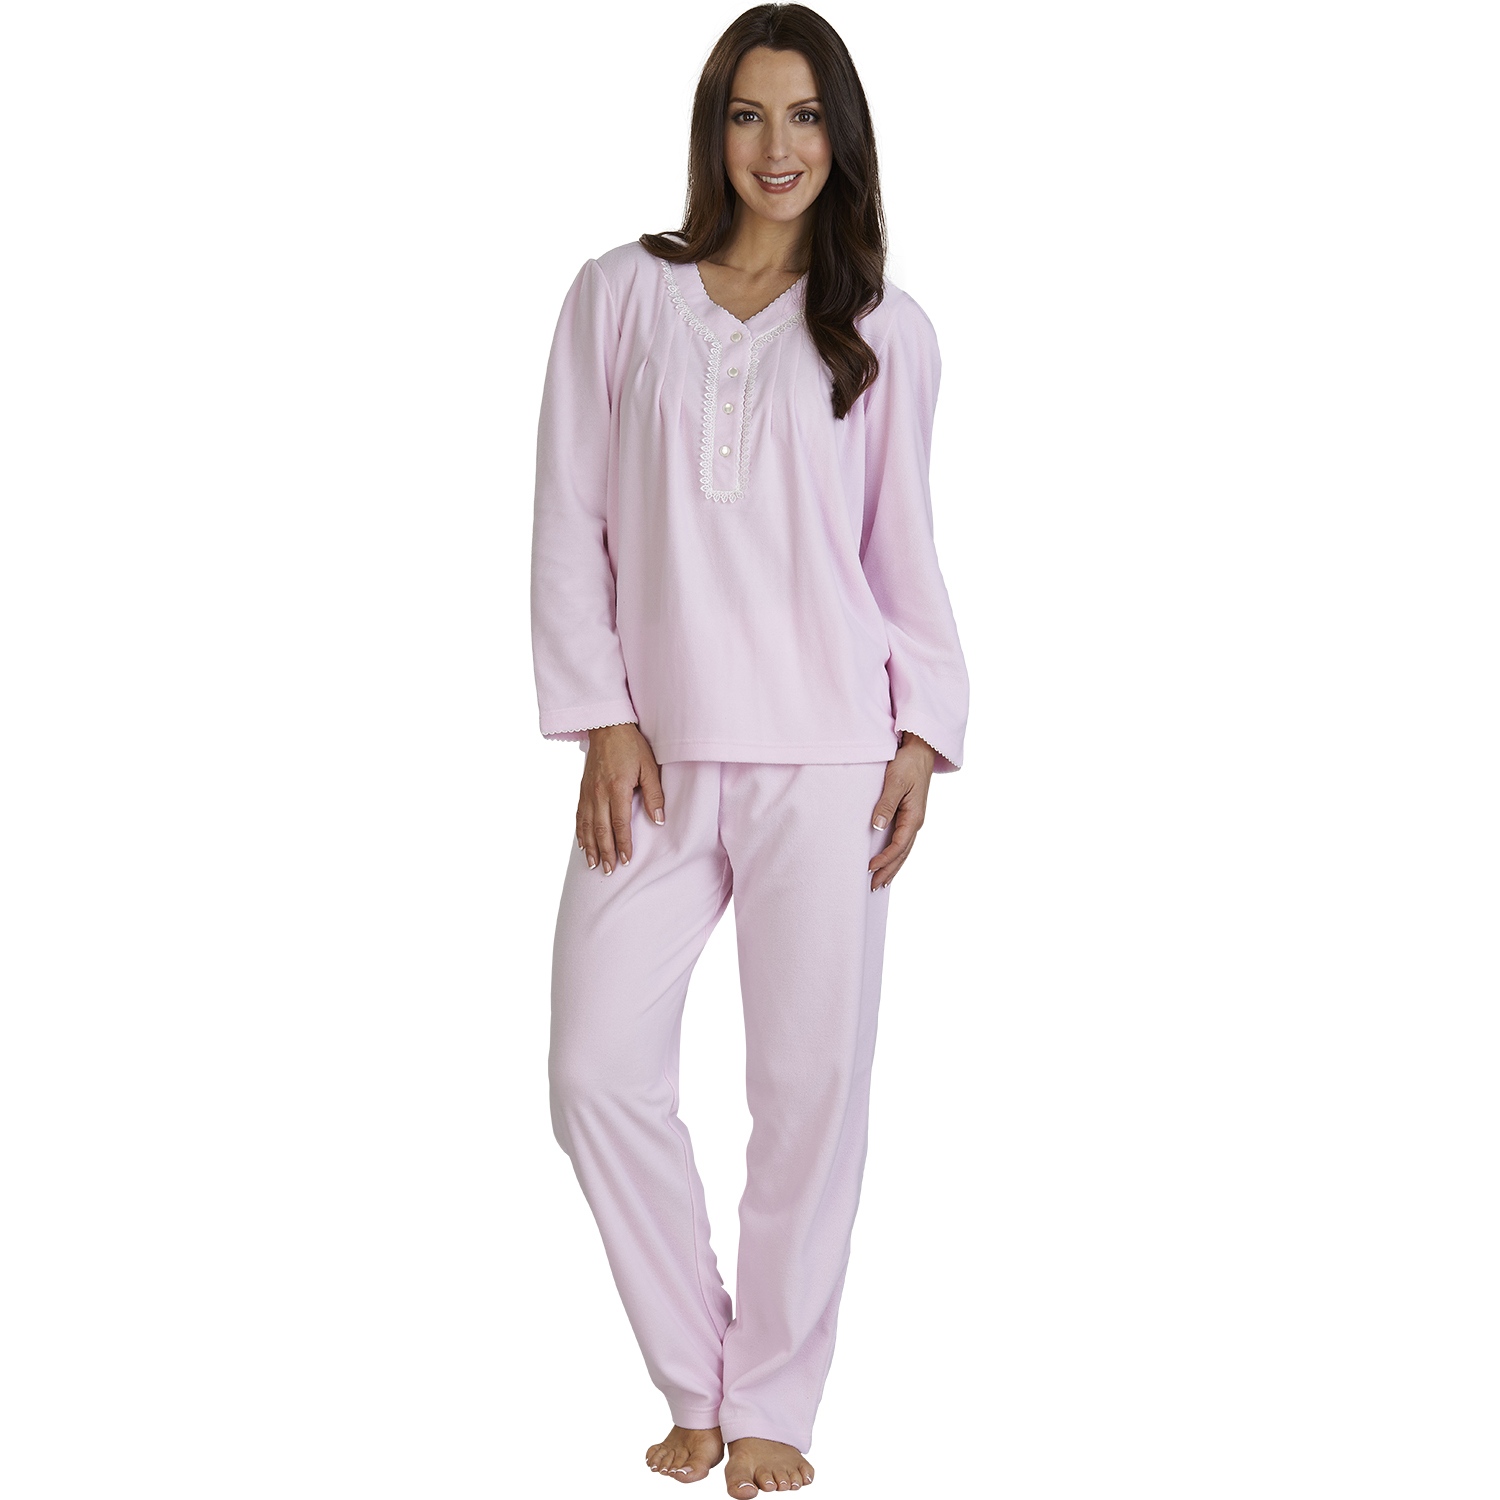 Free shipping BOTH ways on fleece loungewear for women, from our vast selection of styles. Fast delivery, and 24/7/ real-person service with .